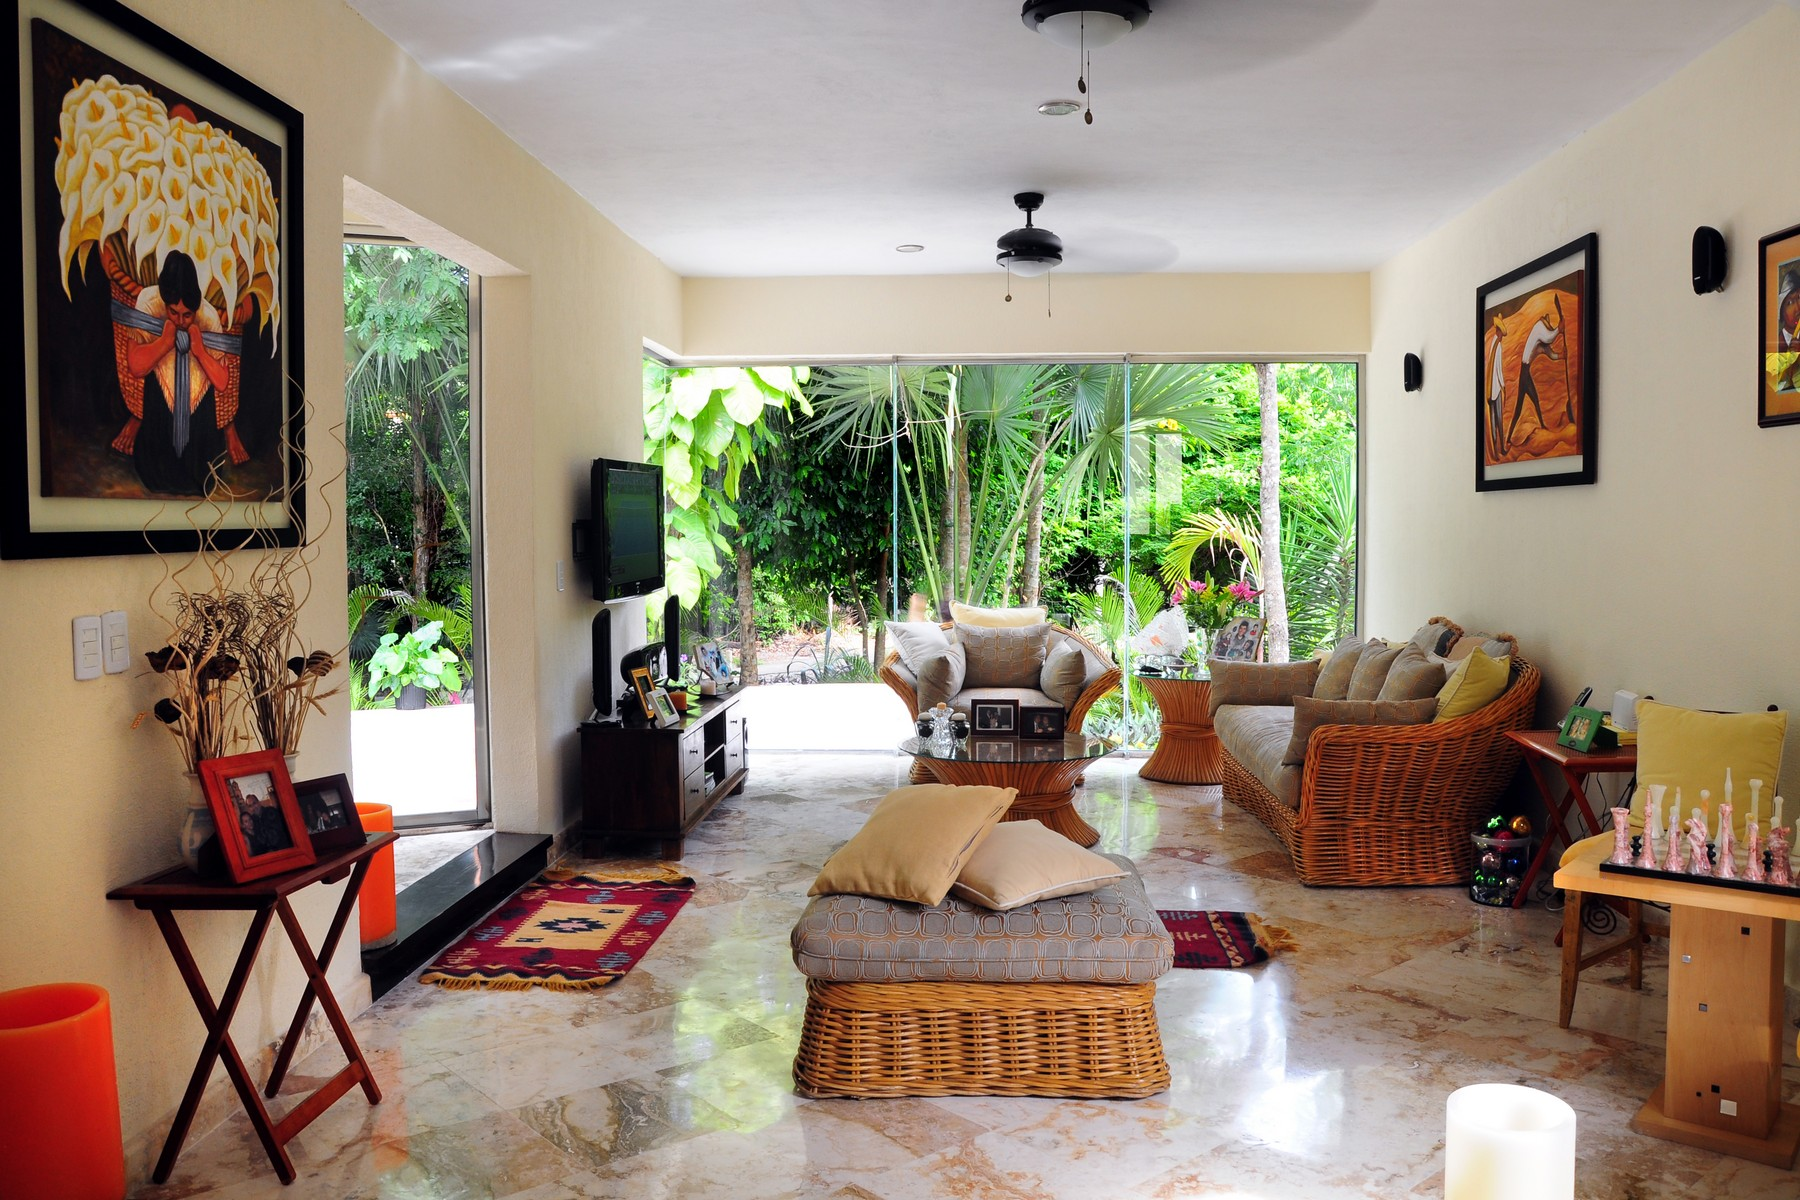 Single Family Home for Sale at CLUB REAL RESIDENTIAL HOME Club Real, Playacar Fase II Playa Del Carmen, Quintana Roo 77710 Mexico